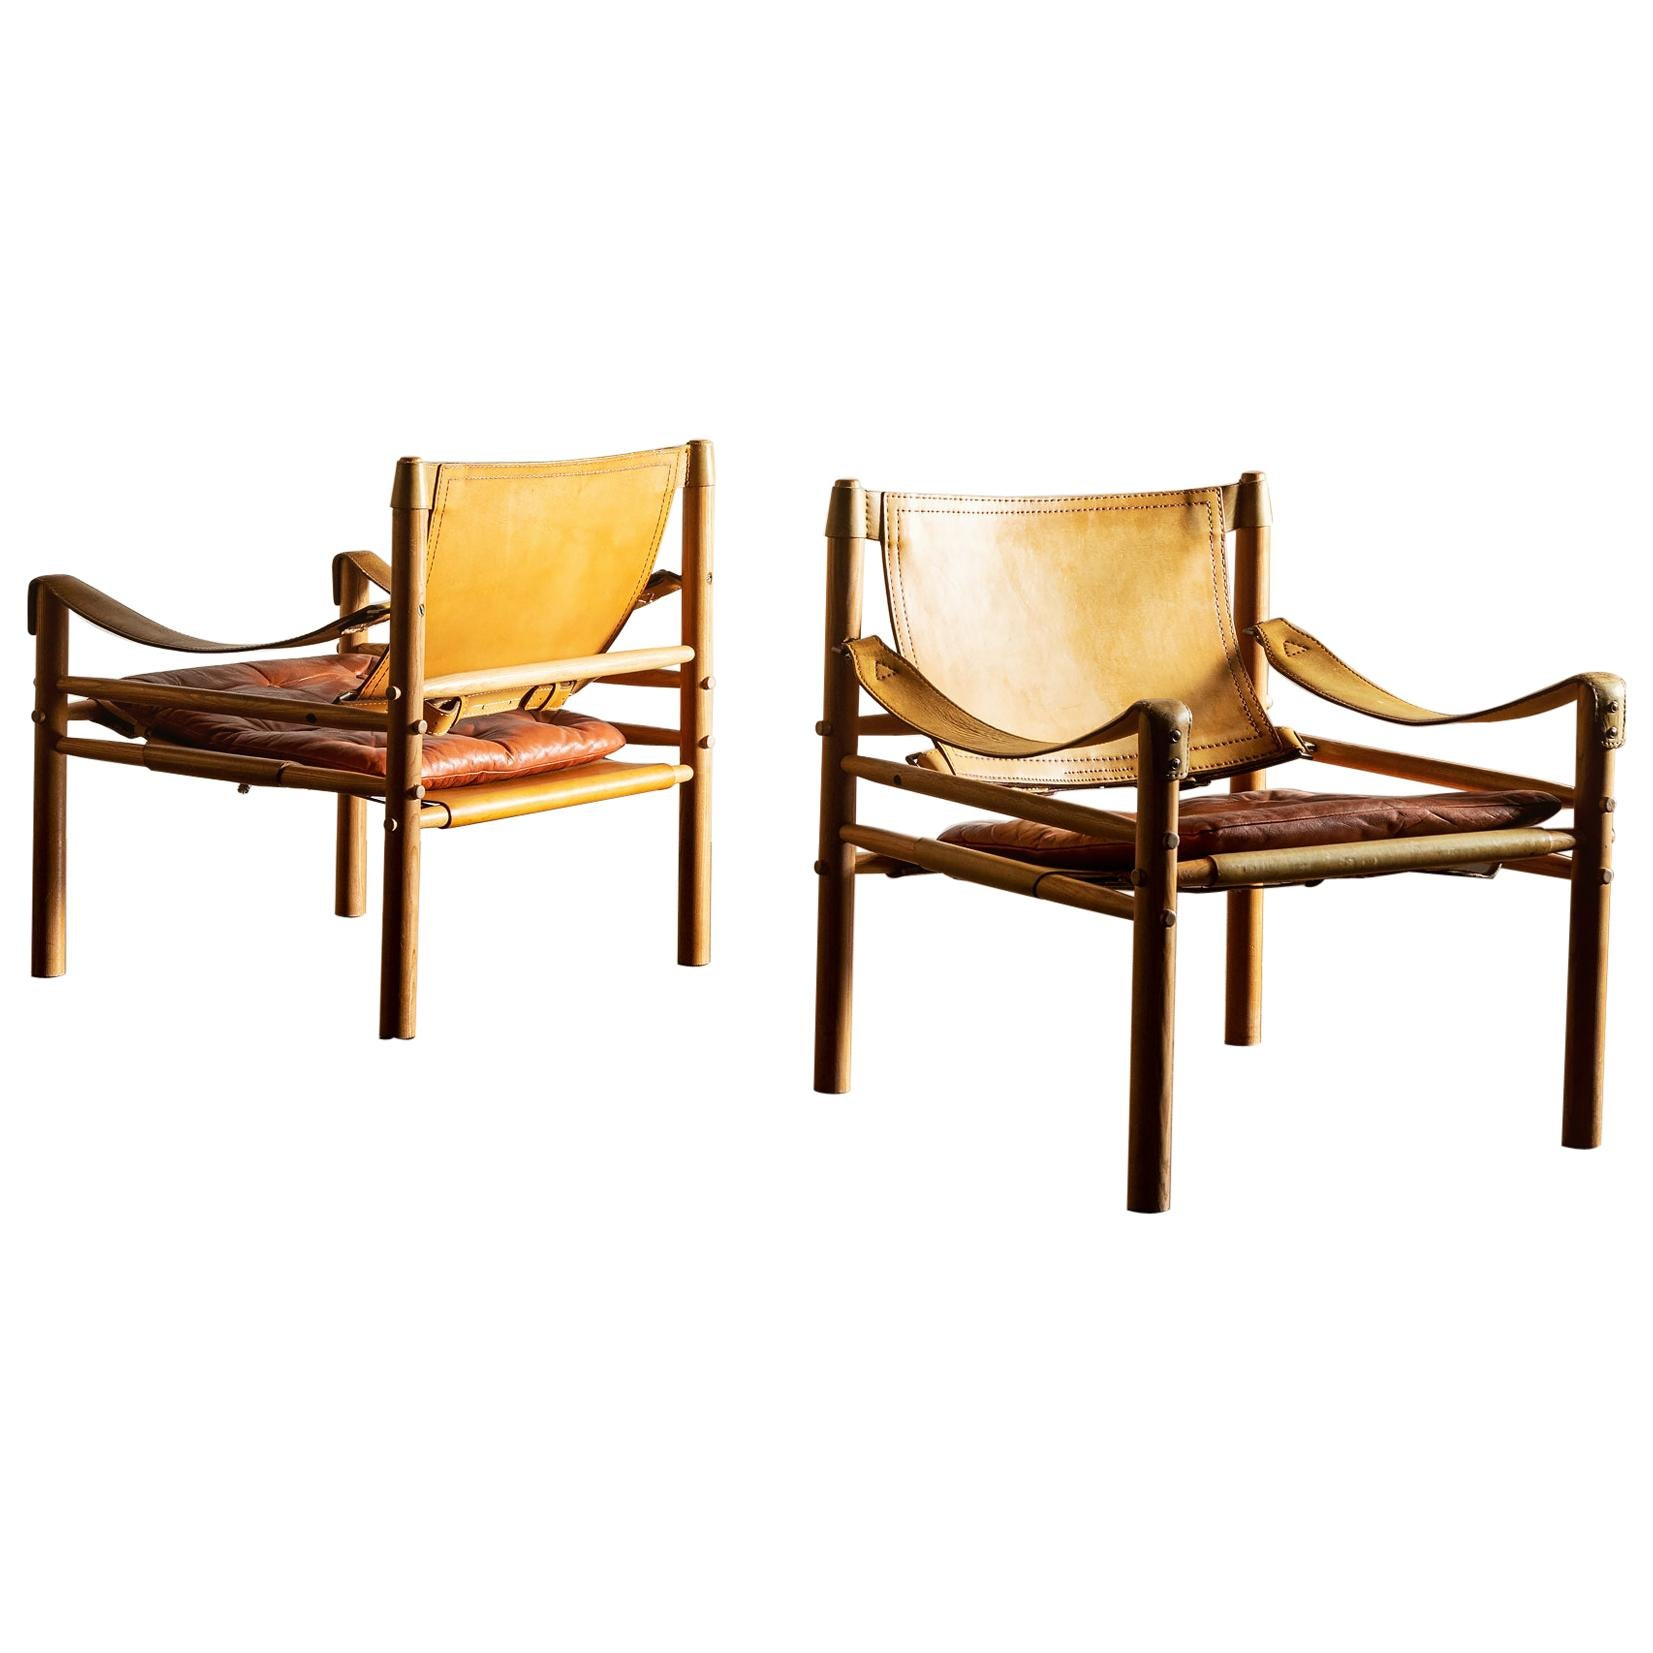 Pair of Arne Norell Sirocco Safari Chairs, Sweden, 1960s